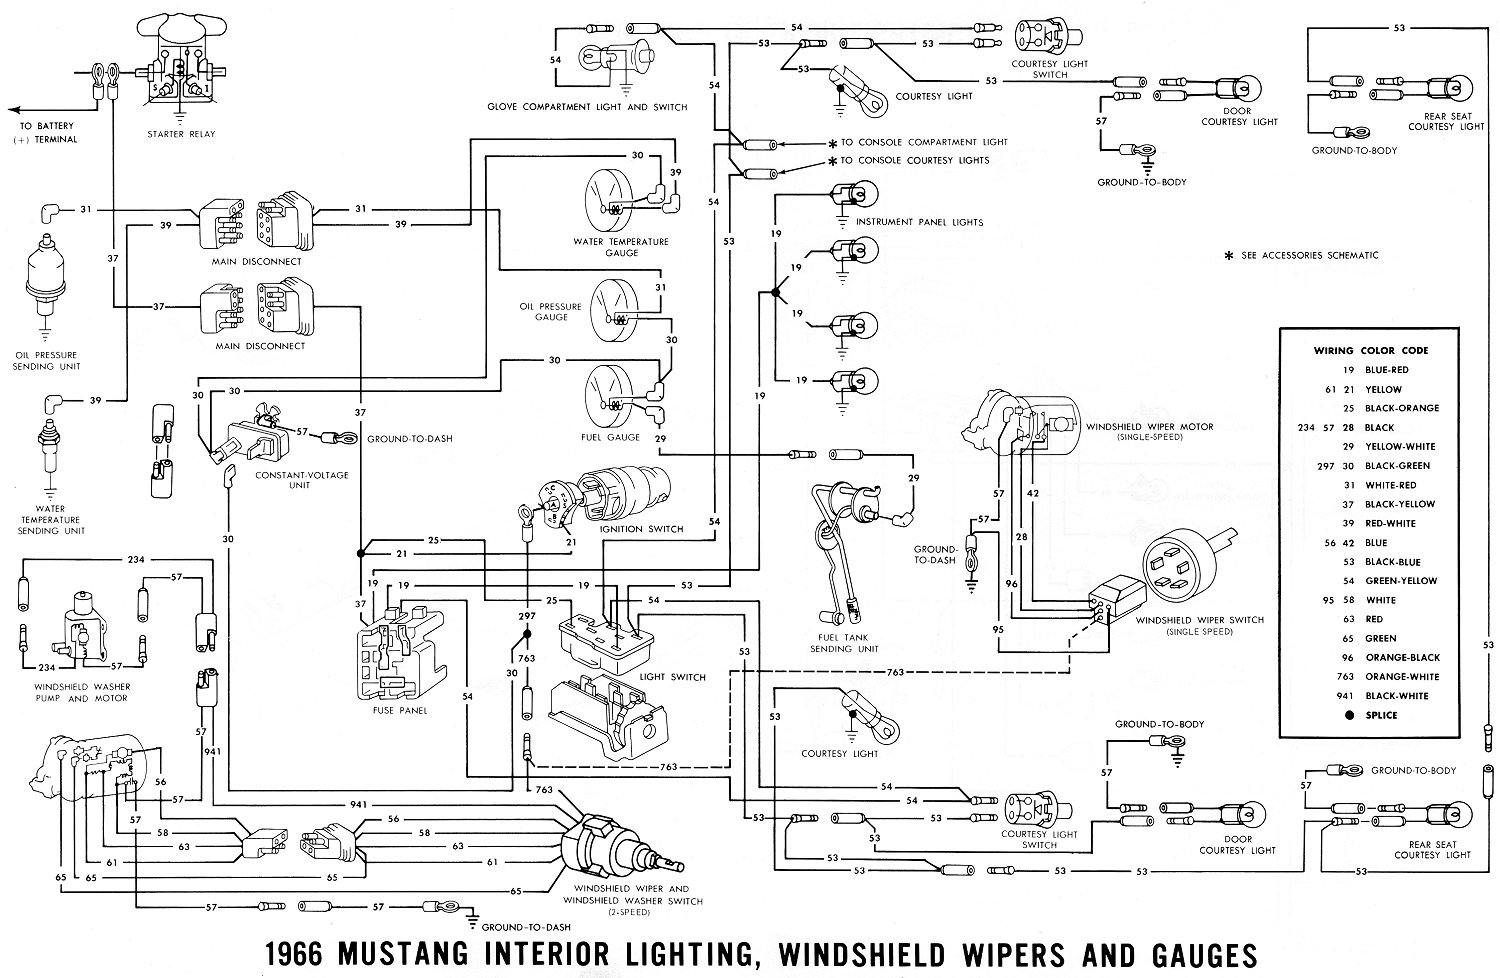 66inter1 1966 mustang wiring diagrams average joe restoration 1968 ford mustang wiring diagram at bayanpartner.co